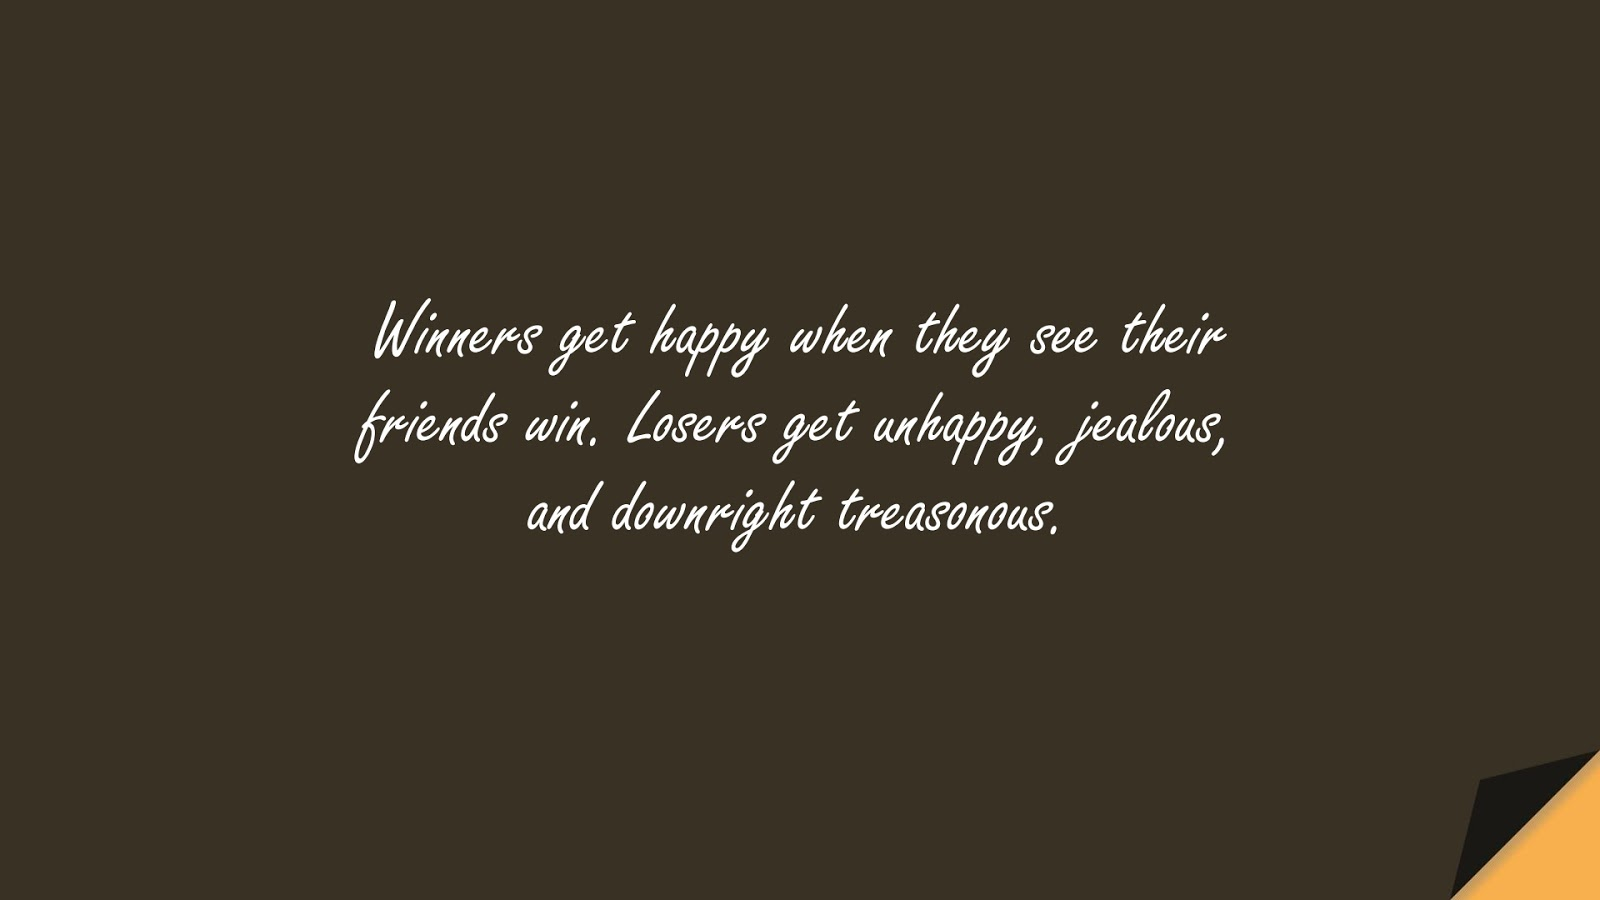 Winners get happy when they see their friends win. Losers get unhappy, jealous, and downright treasonous.FALSE